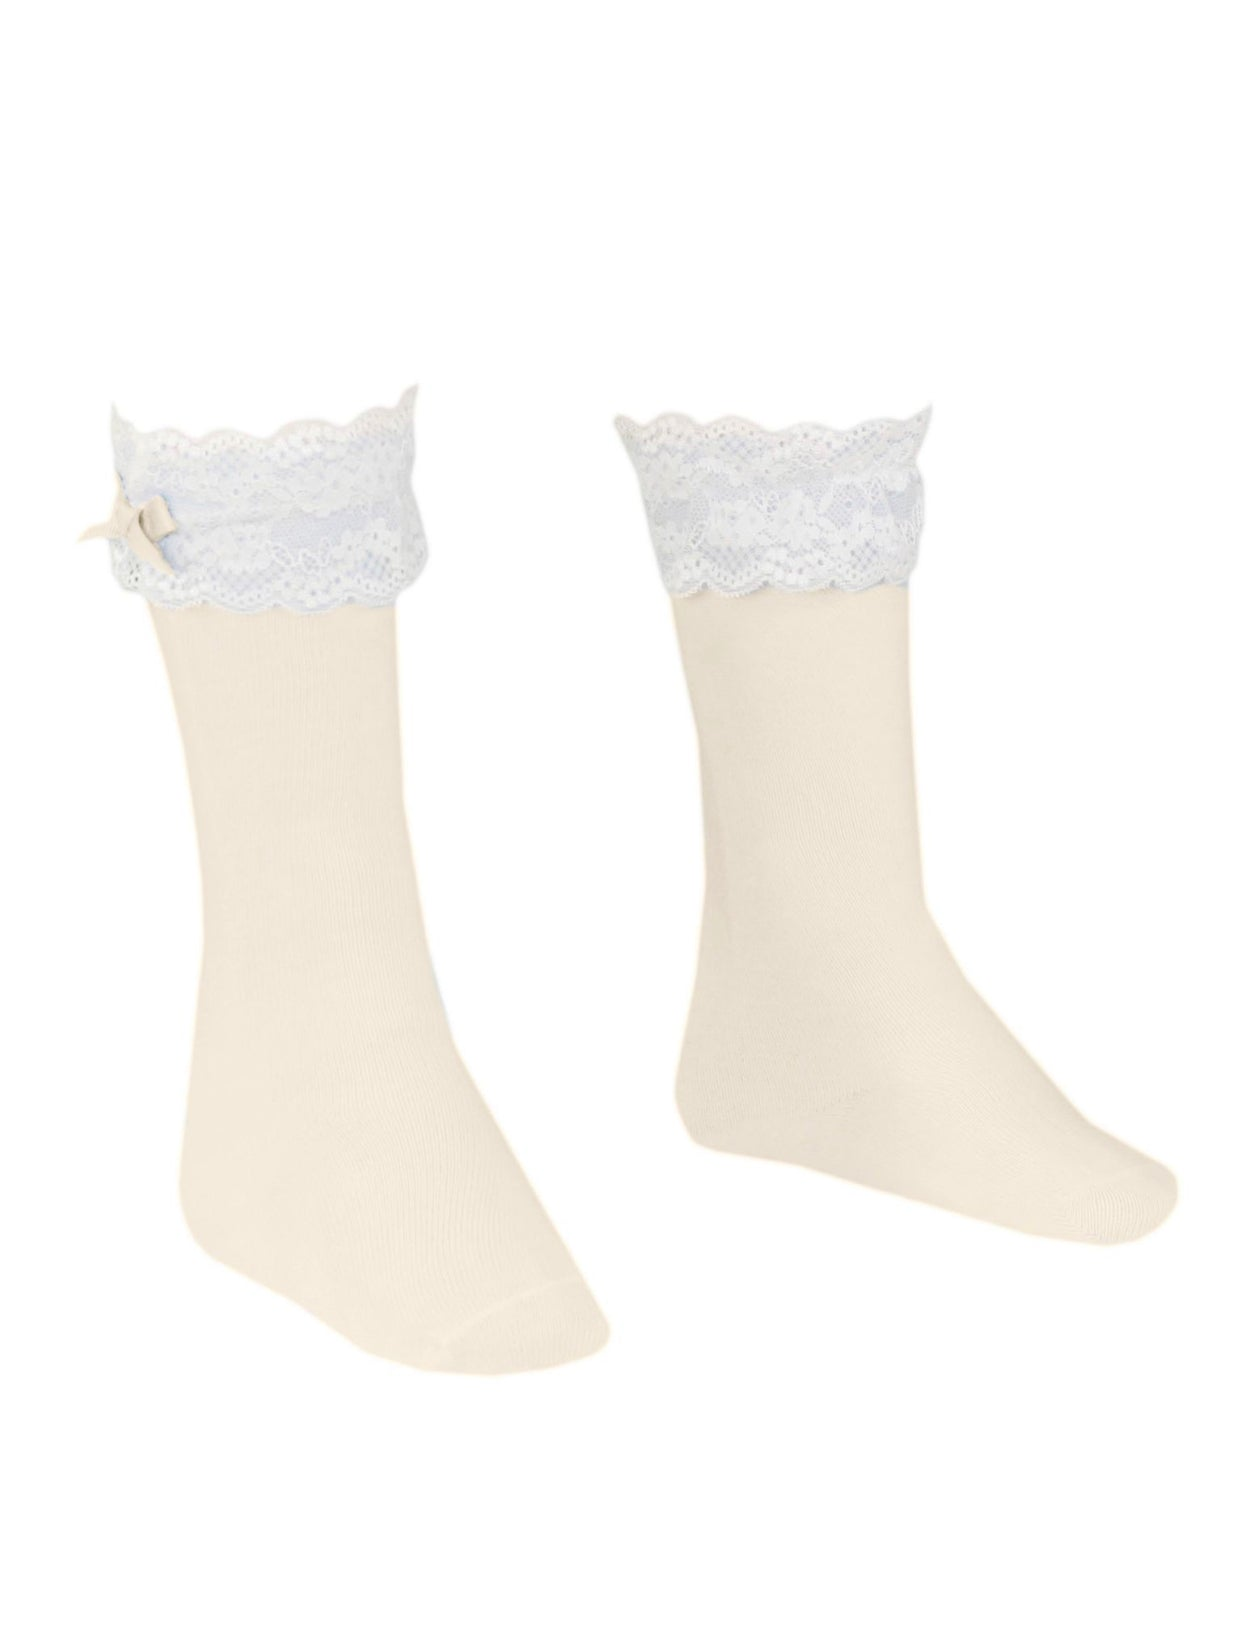 MIRANDA Ivory Knee High socks with frilly details